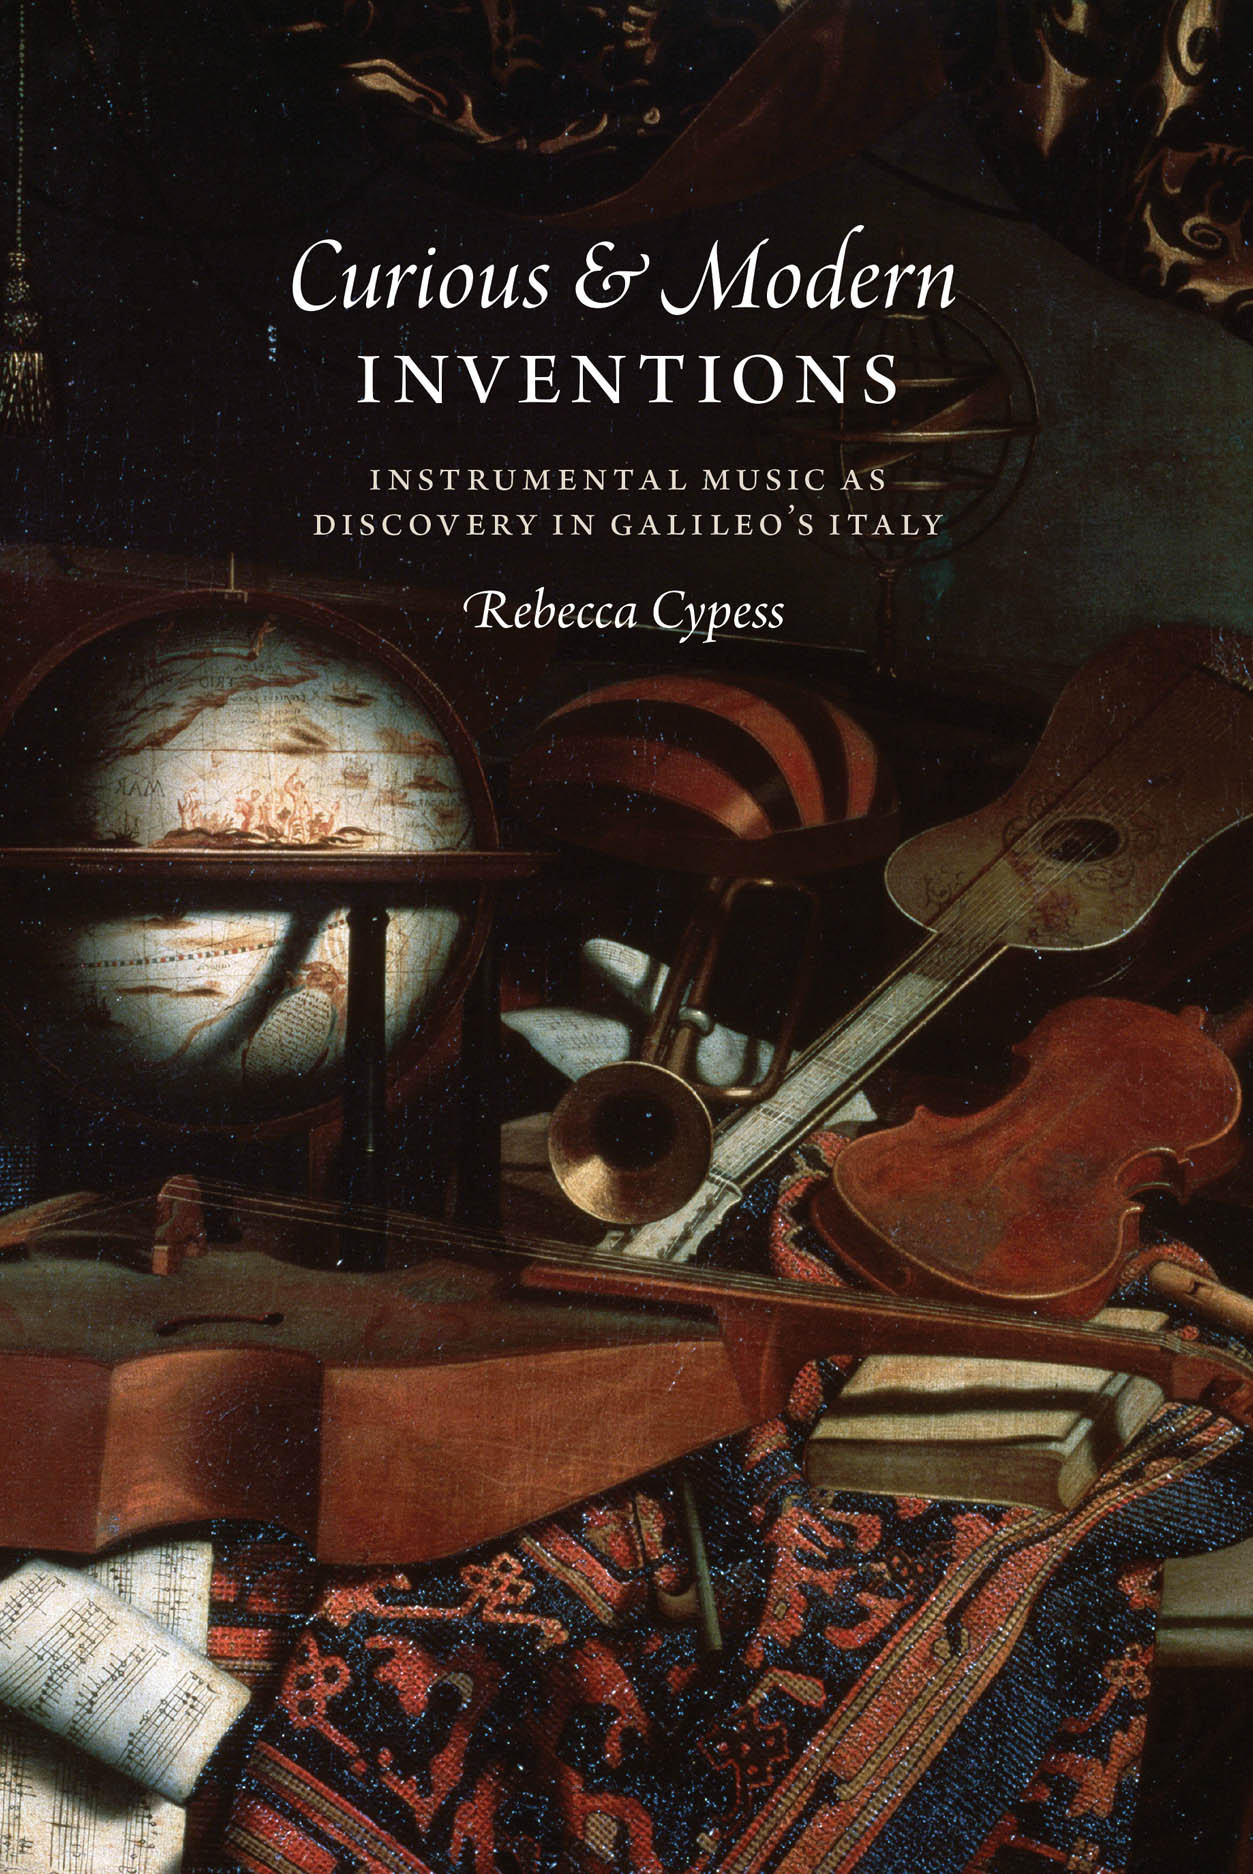 Curious and Modern Inventions: Instrumental Music as Discovery in Galileo's Italy